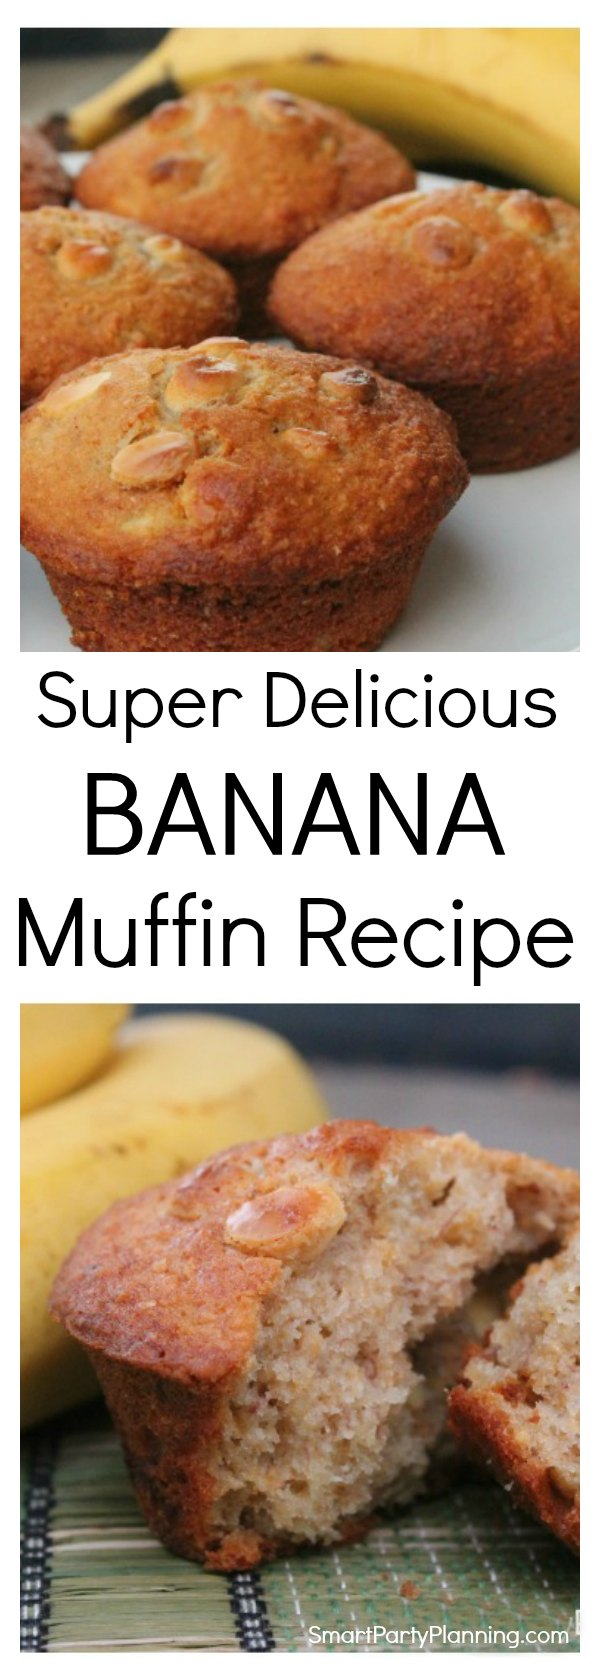 This quick and easy banana muffin recipe will be loved by the entire family. Whether you eat them as an afternoon snack or get away with eating them for breakfast, they will be a sure hit.